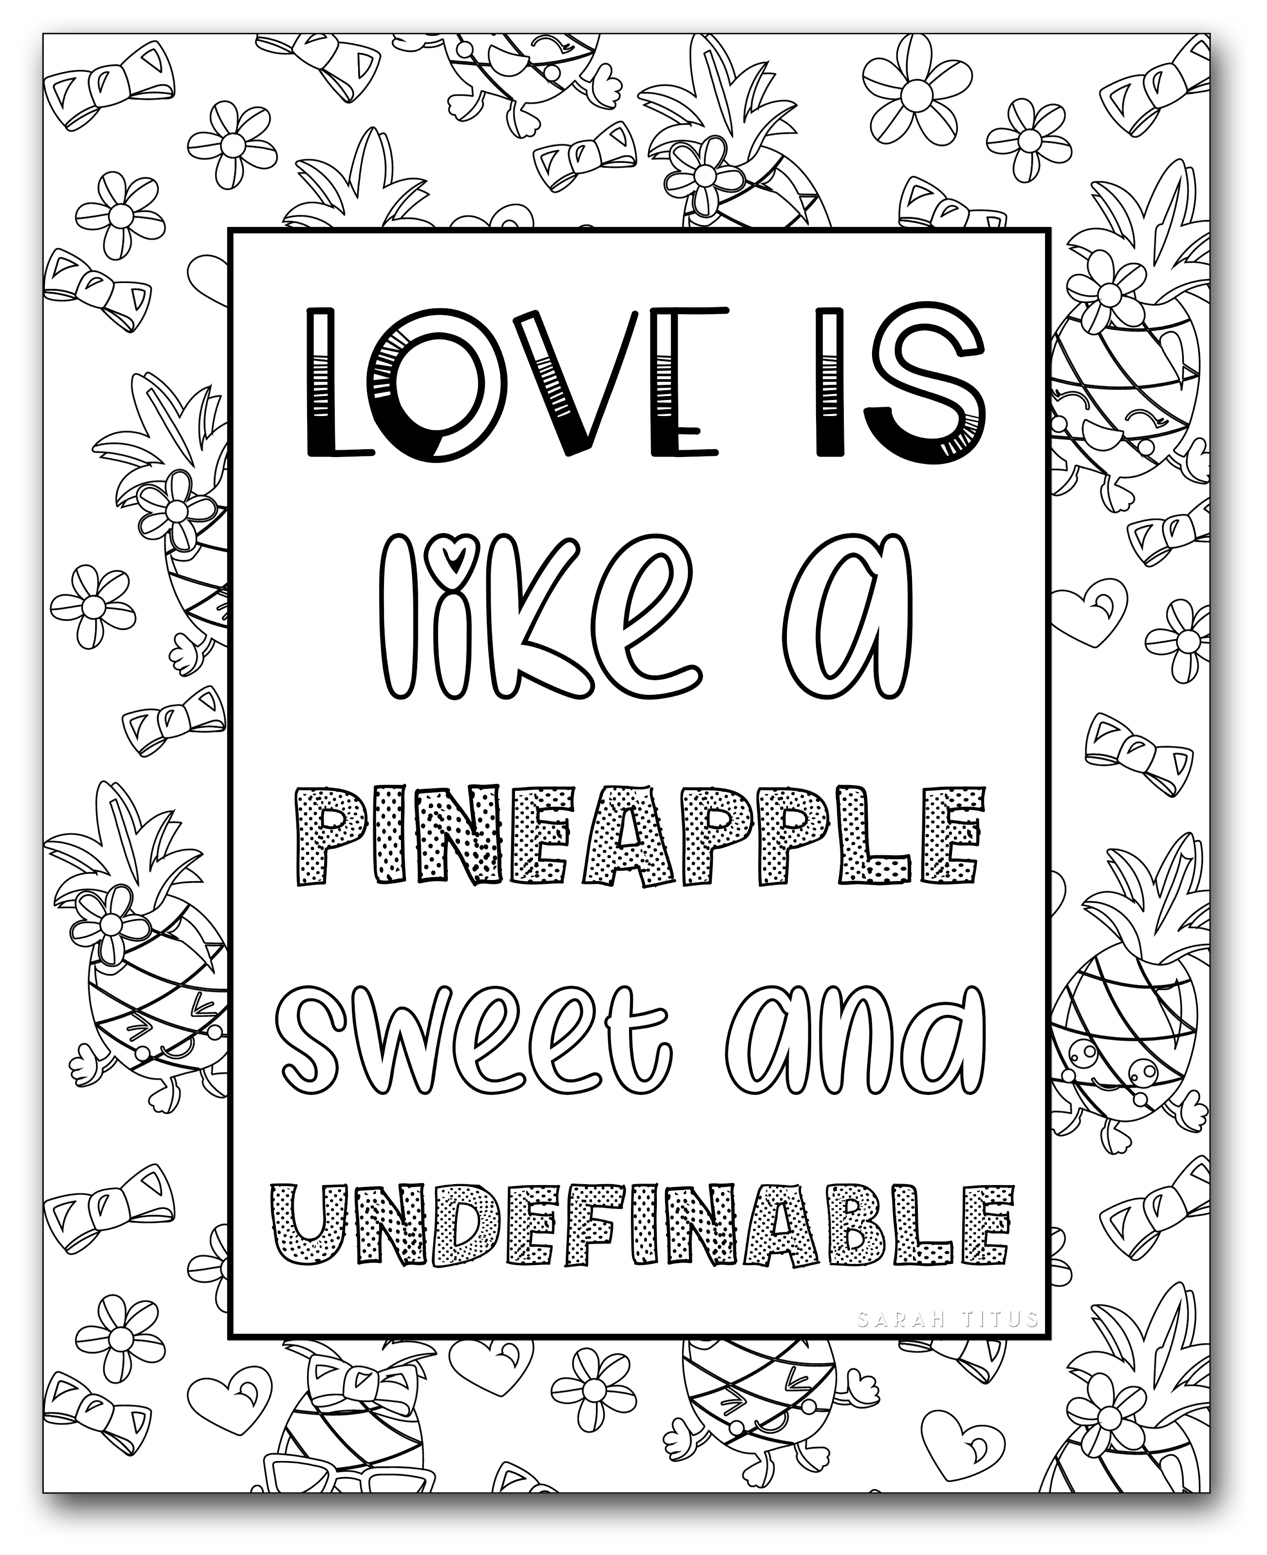 Printable Coloring Pages For Girls - Sarah Titus - Free Printable Coloring Pages For Teens